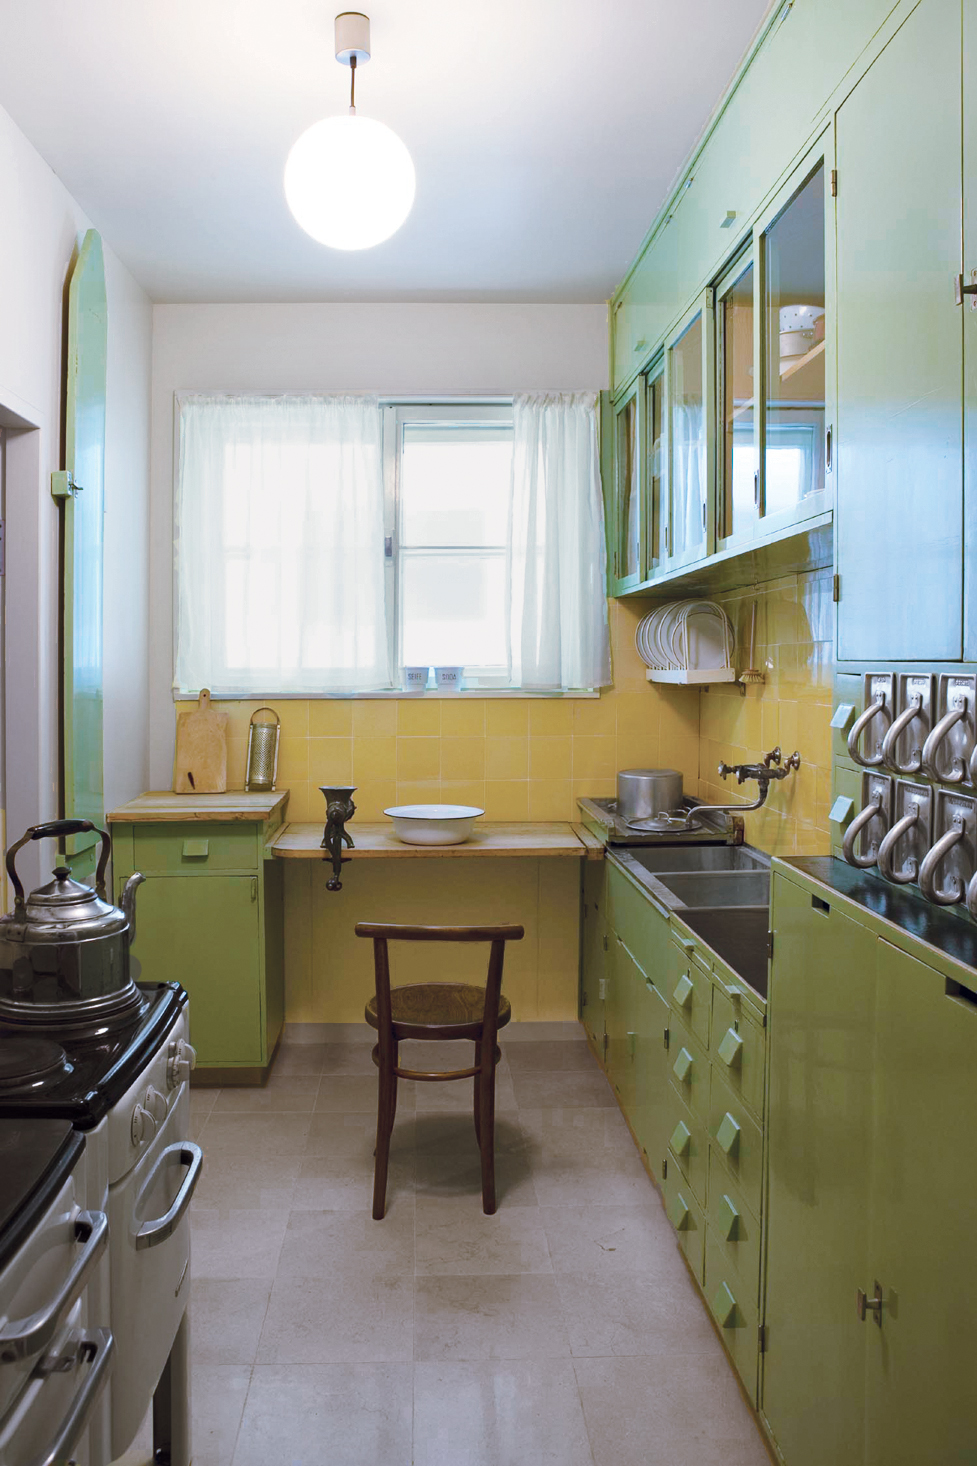 The Frankfurt kitchen, designed by Austrian architect Margarete Schütte-Lihotzky, was one of the first kitchens designed as a complete and efficient system.